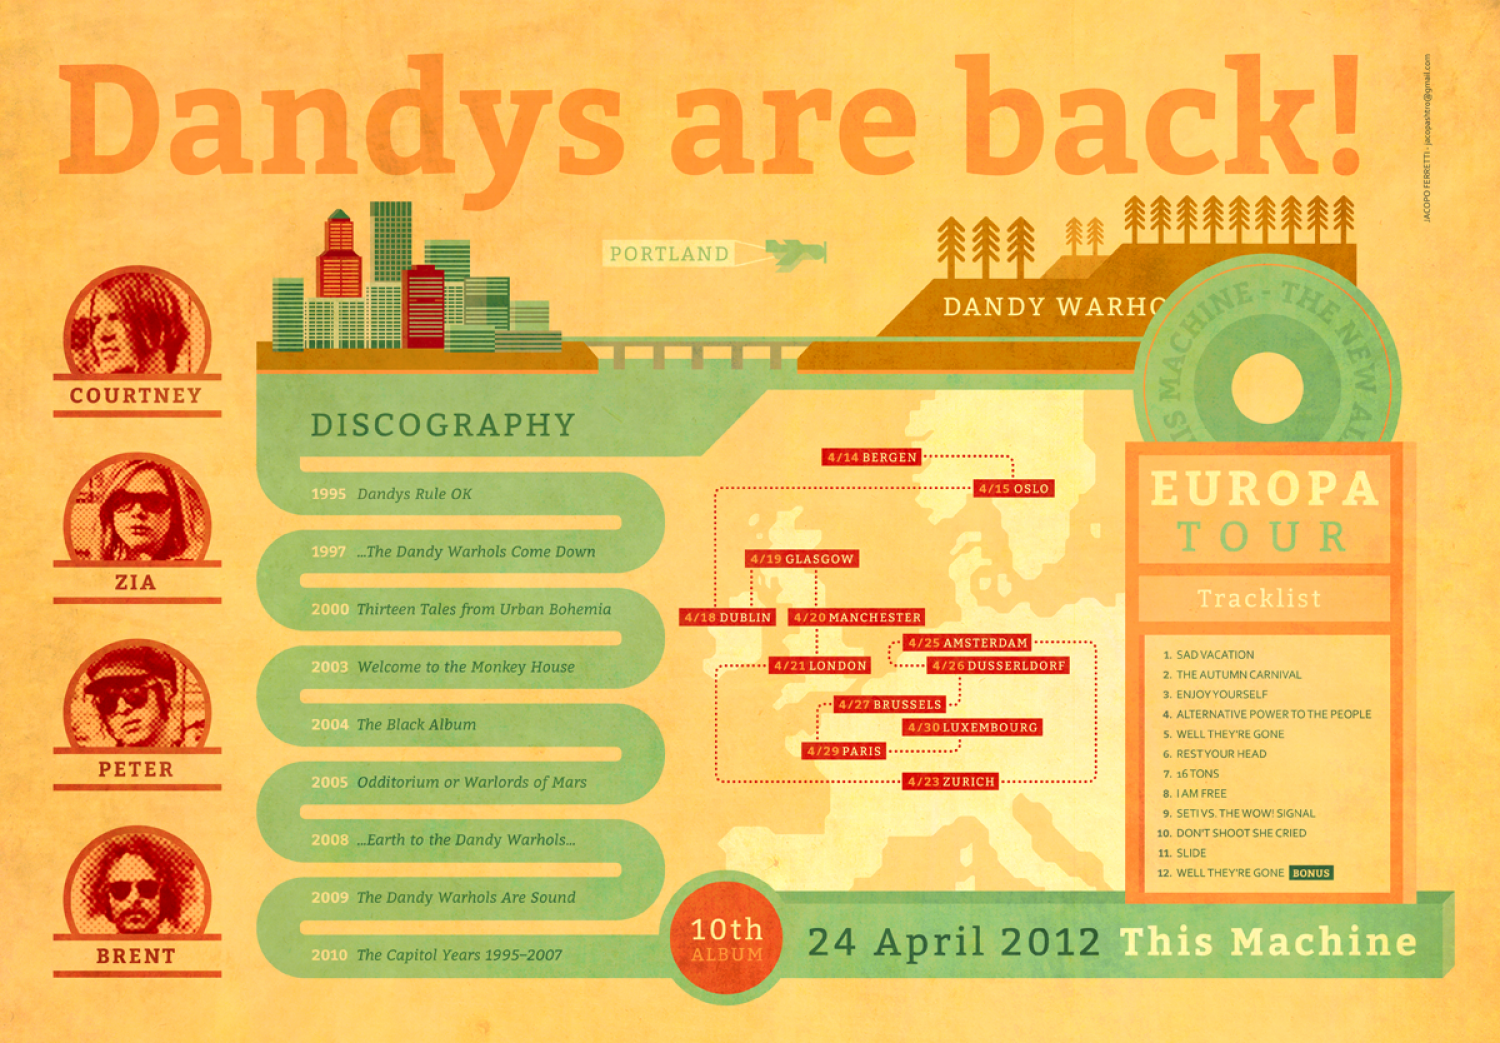 Dandys are back! Infographic